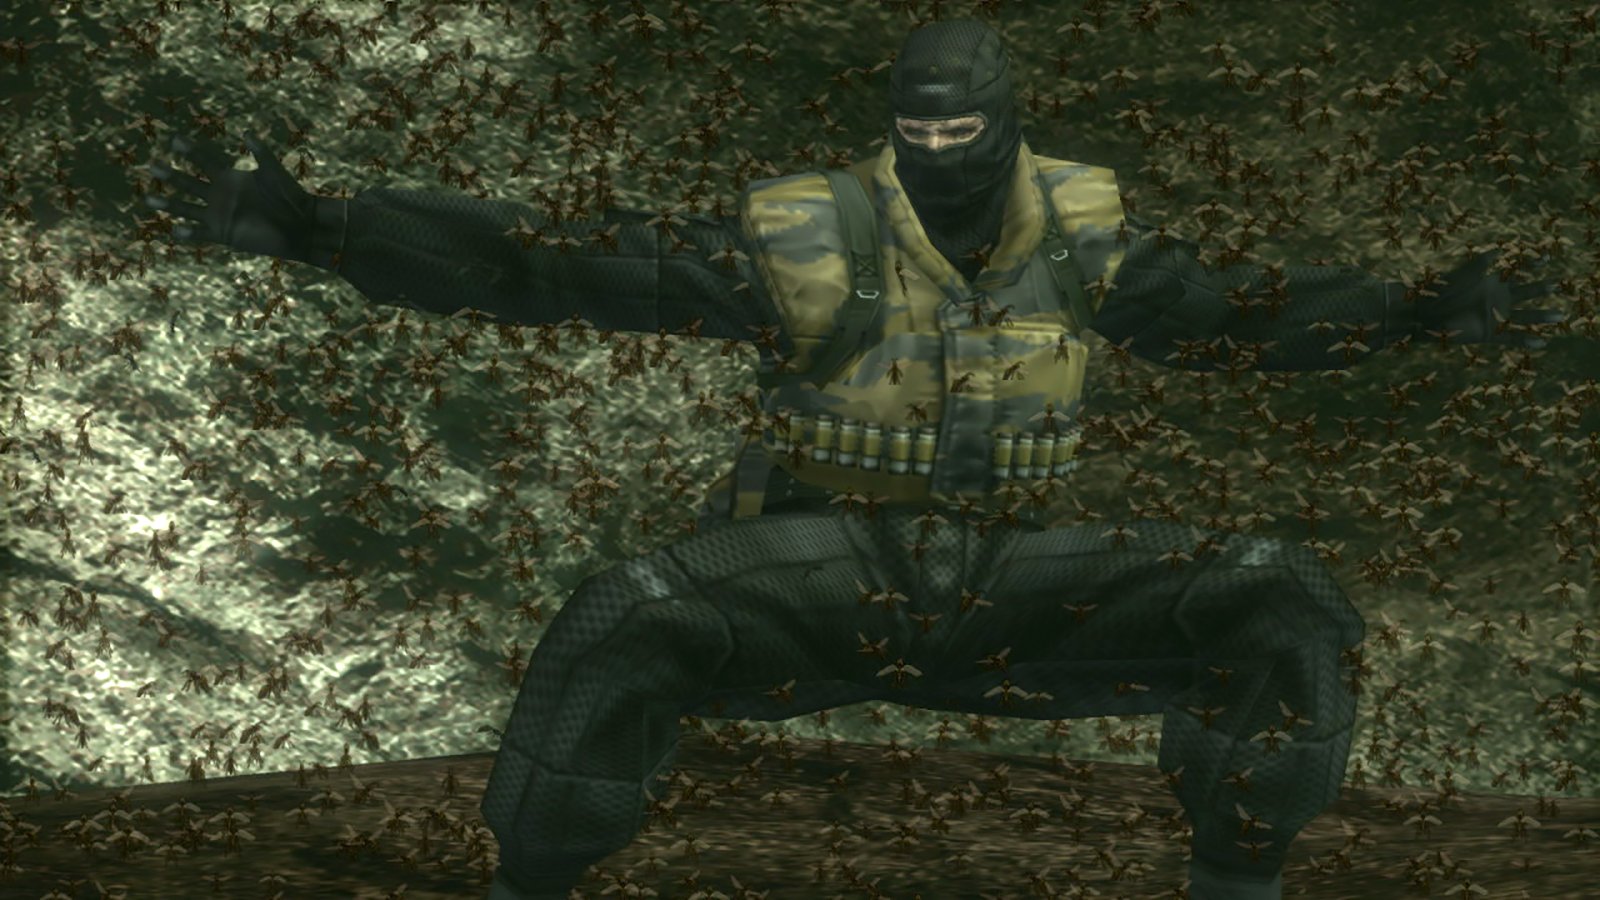 Metal Gear Solid 3 Snake Eater Hd Is Out For The Nvidia Shield Tv